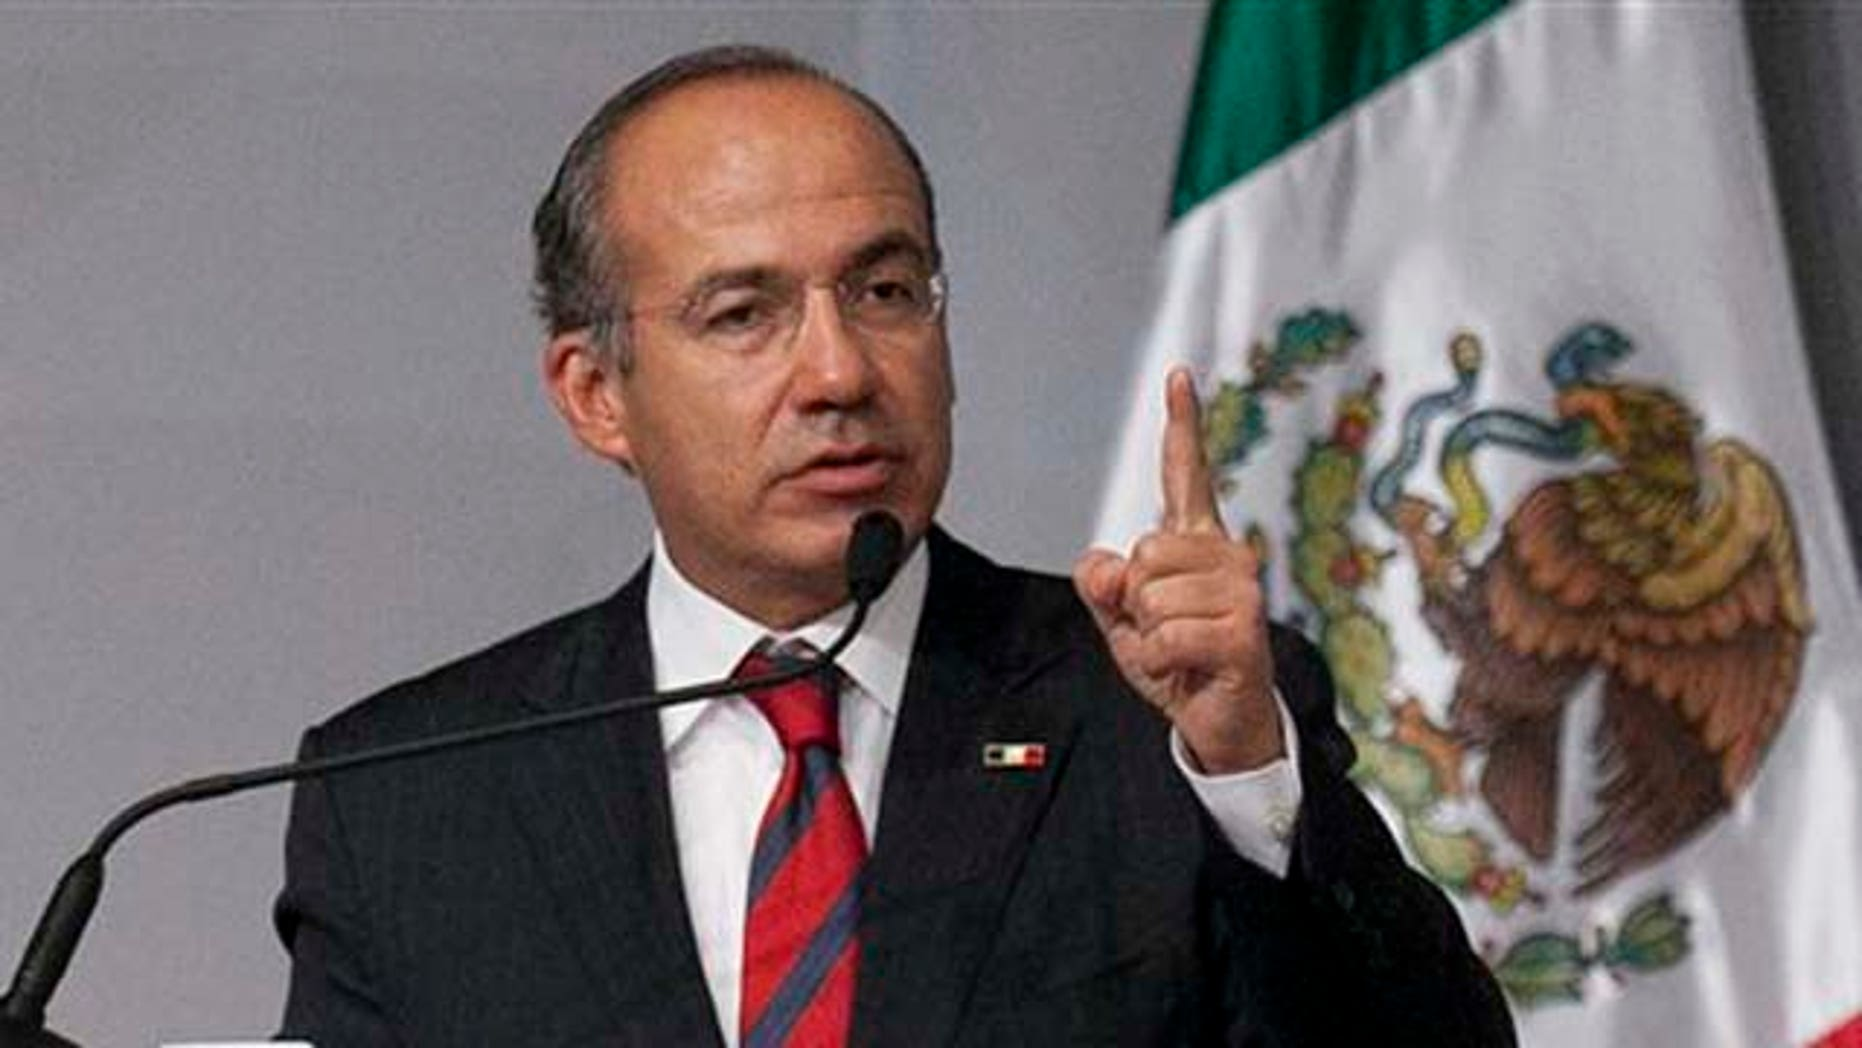 Sept. 21, 2011: Mexico's President Felipe Calderón addresses members of the Mexican community on Wednesday during a visit to Los Angeles.